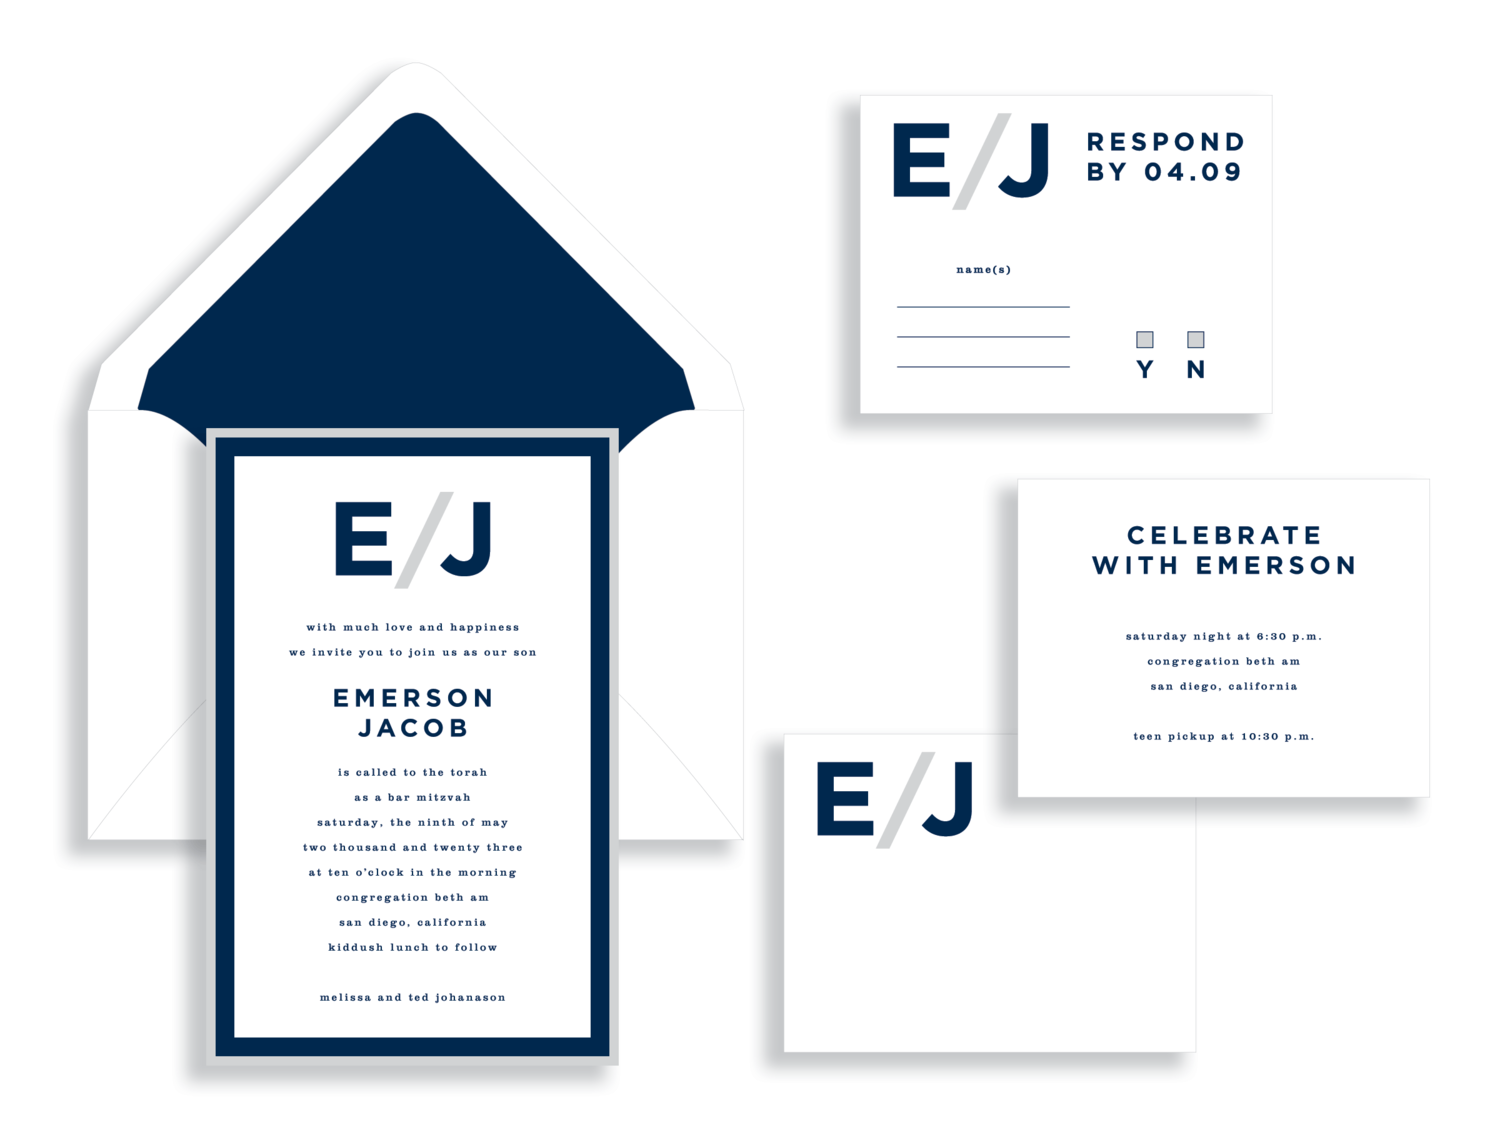 Emerson bar mitzvah invitation available in the Washington DC Metro area from Staccato.